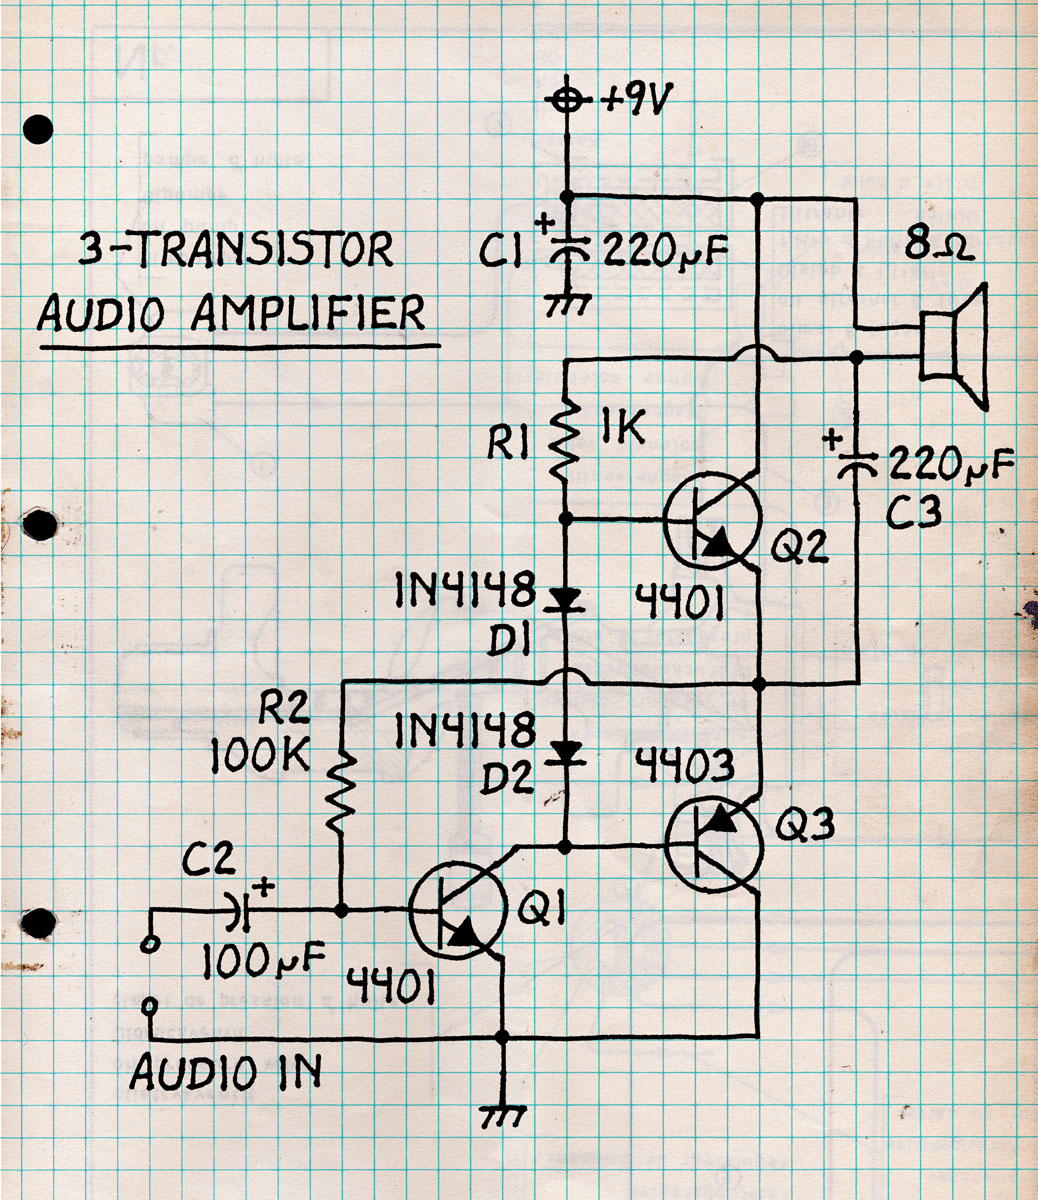 Twin T Morse Code Practice Oscillator K4icy Transistor Amplifier Circuit Design Schematic Diagram 3 Audio Click On Pic For Printable Version You Can Build These Circuits